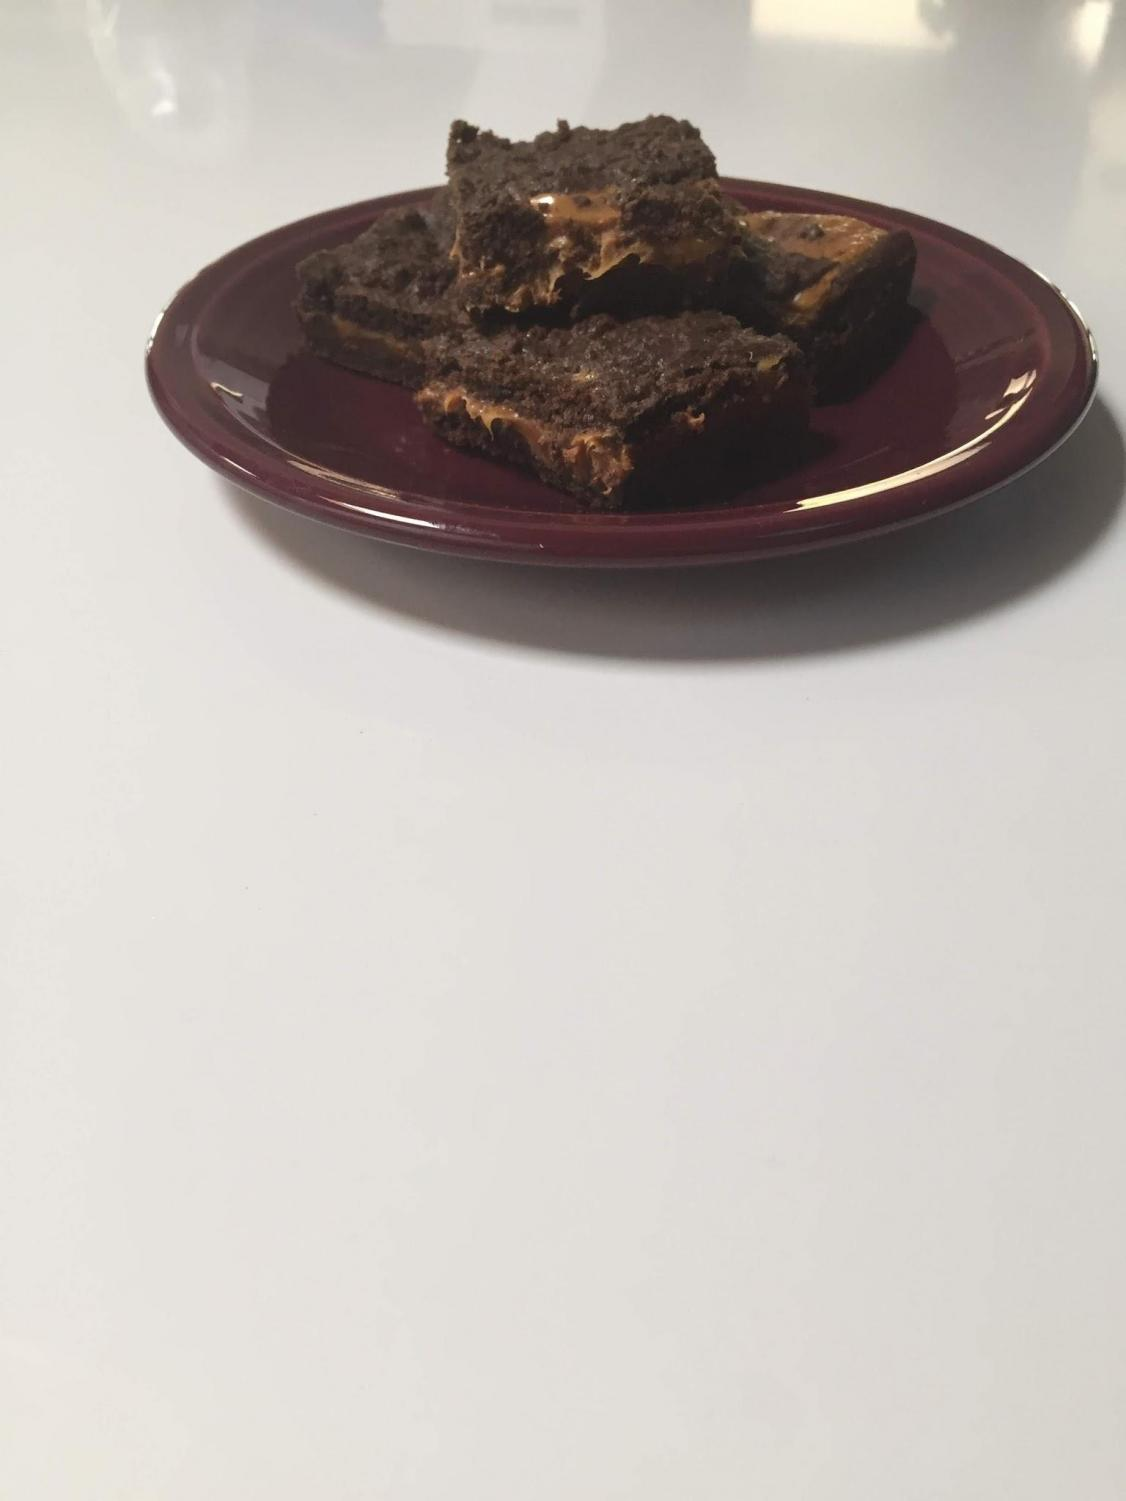 These brownies take the cake.